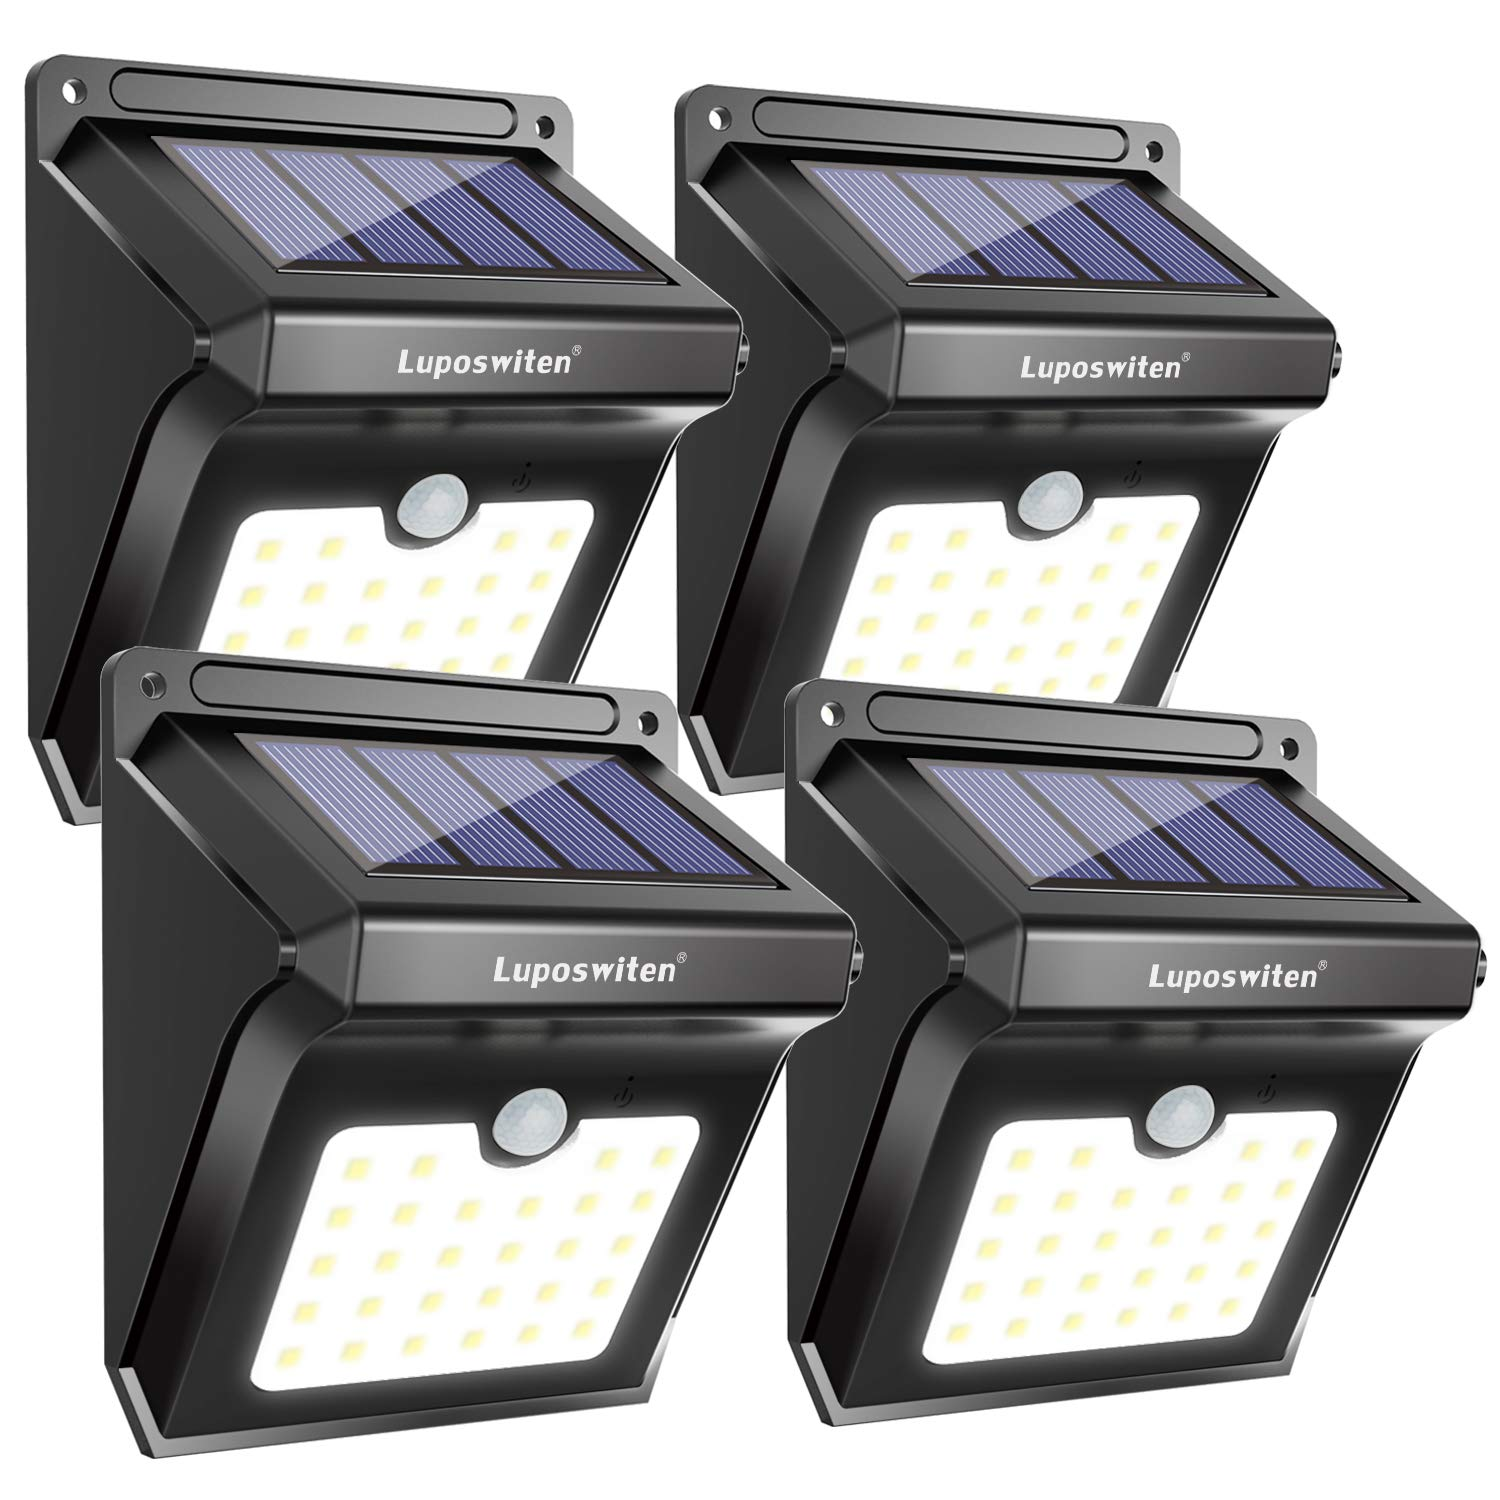 28 LEDs Solar Lights Outdoor, Luposwiten Solar Motion Sensor Lights Wireless Security Lights, 400 Lumen Waterproof Solar Powered Lights for Steps Yard Garage Porch Patio(4-Pack) by Luposwiten